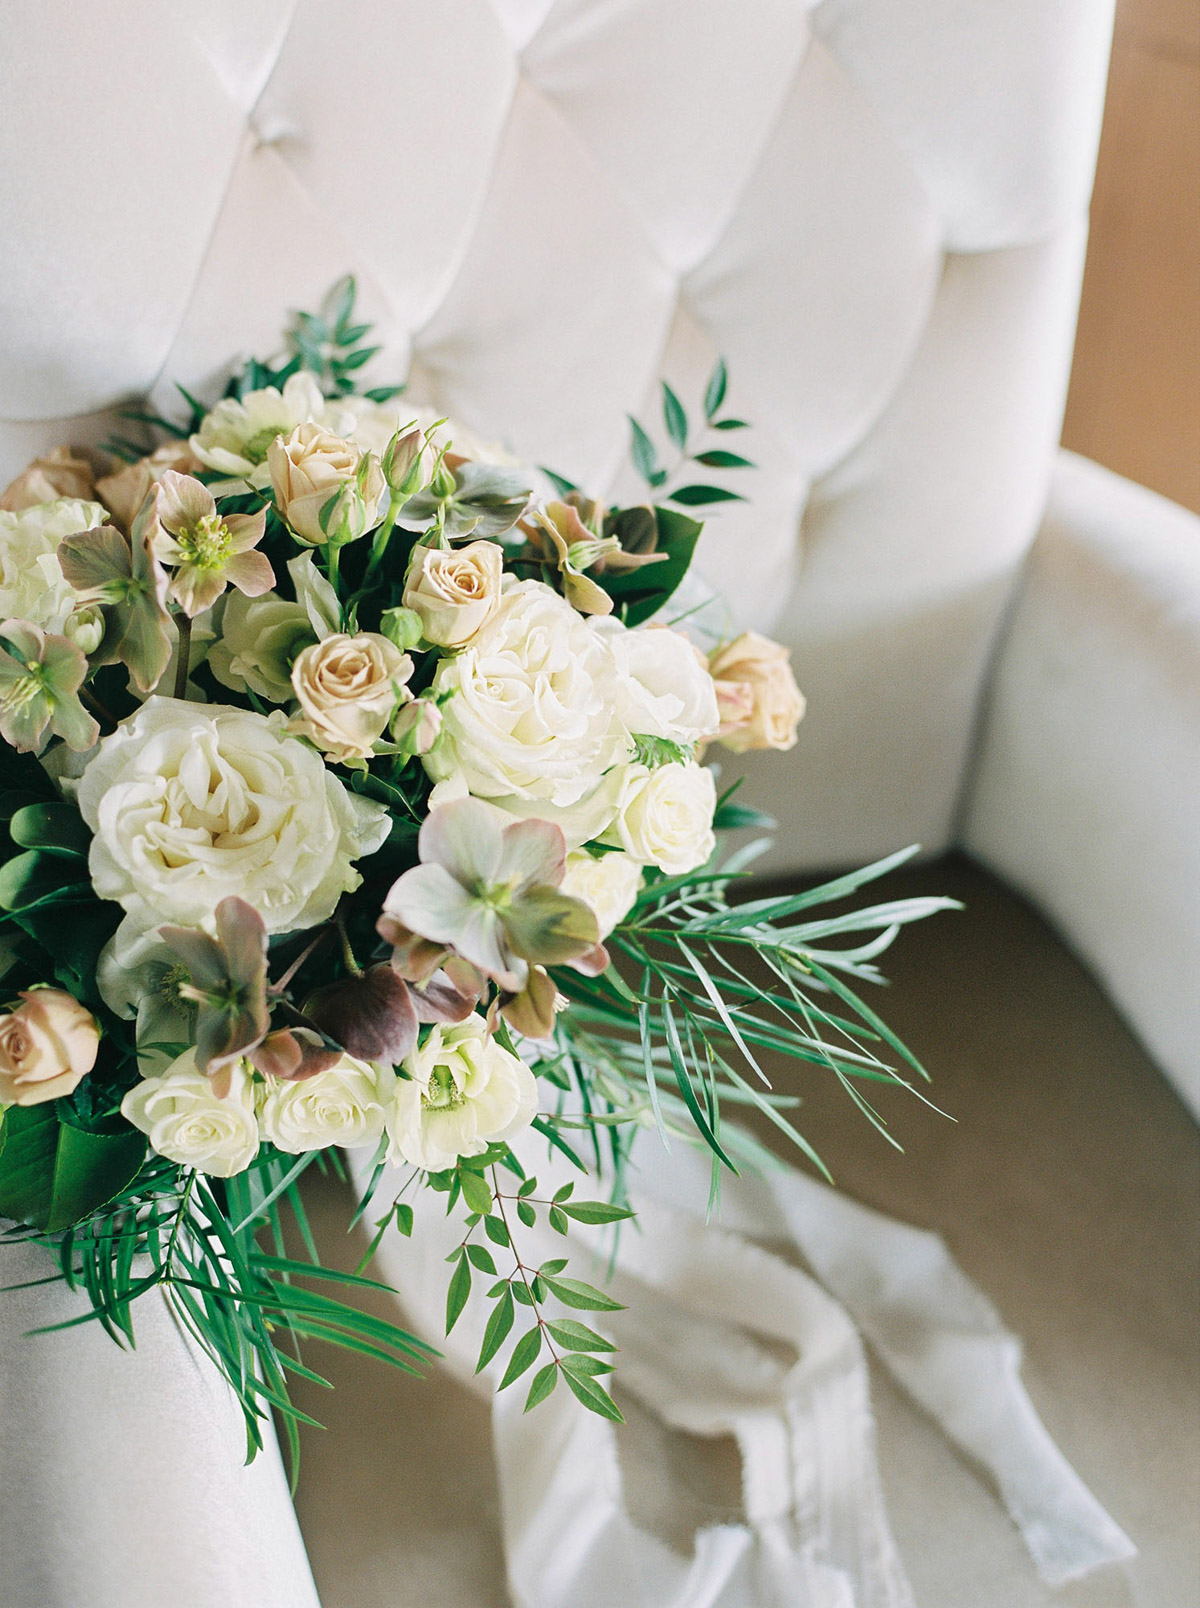 will-reid-photo-vineyard-bride-swish-list-kurtz-orchards-market-niagara-on-the-lake-wedding-editorial-44.jpg